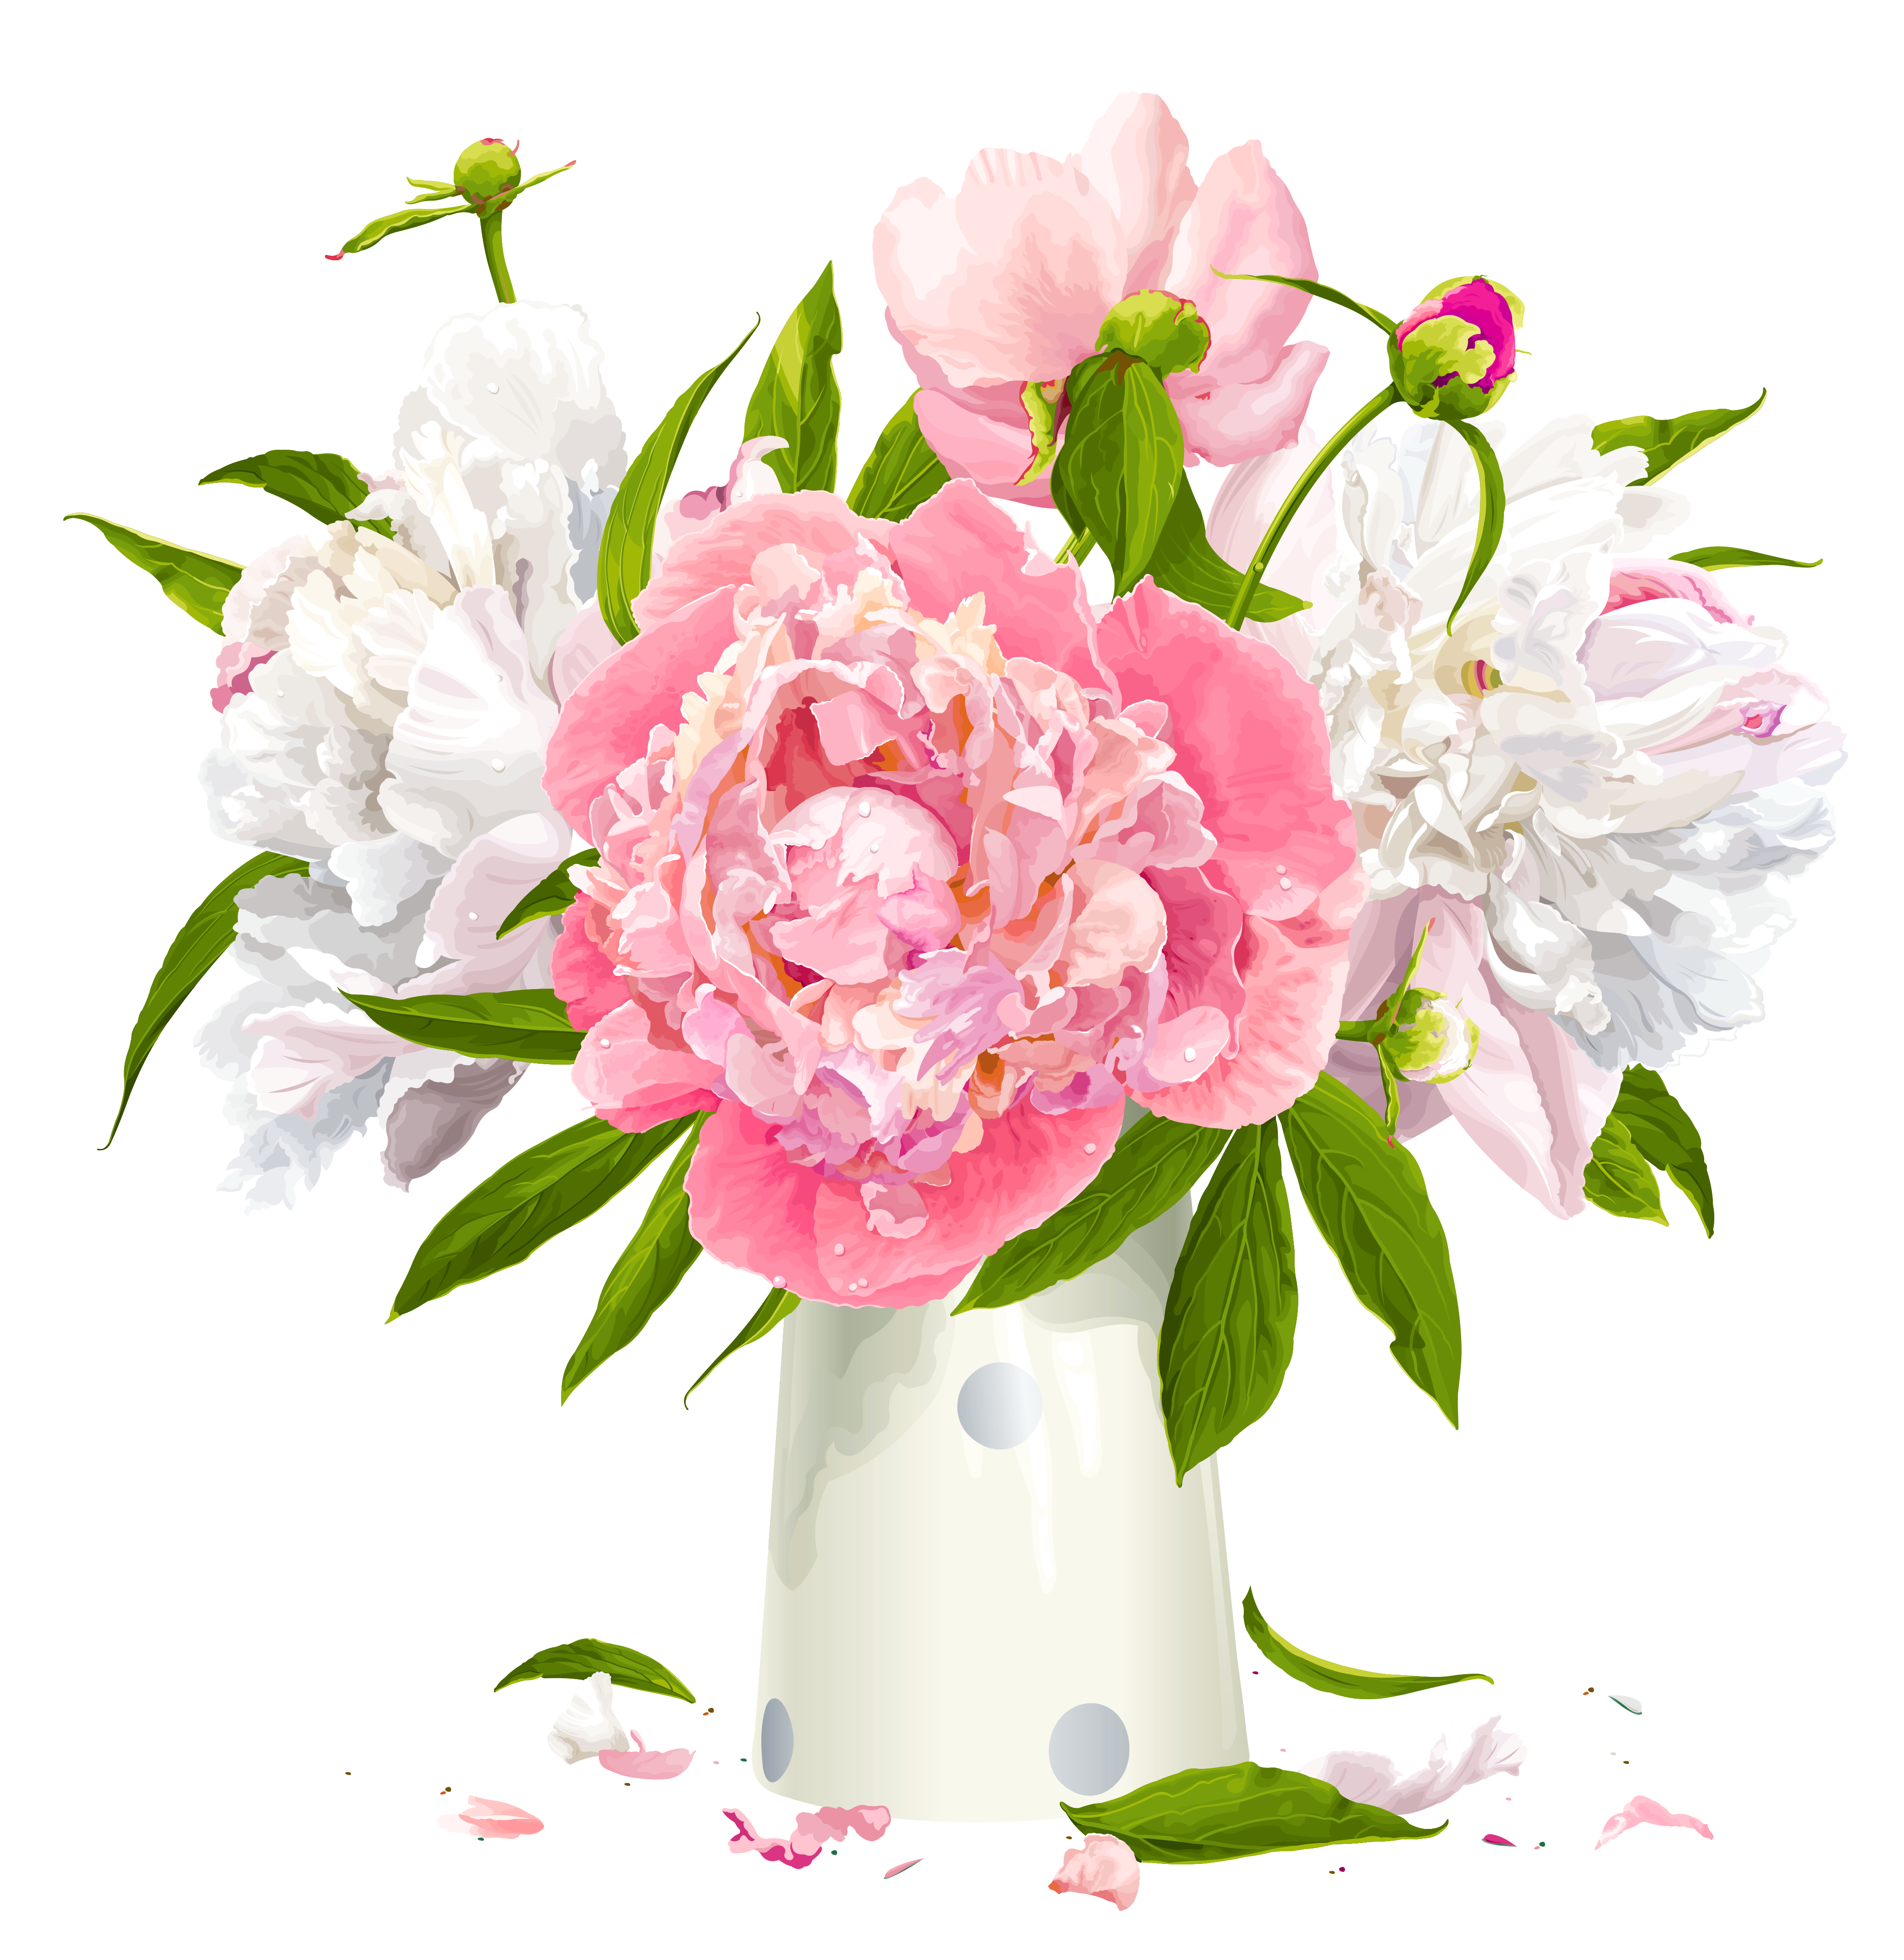 Cliparts printable images pinterest. Peony clipart